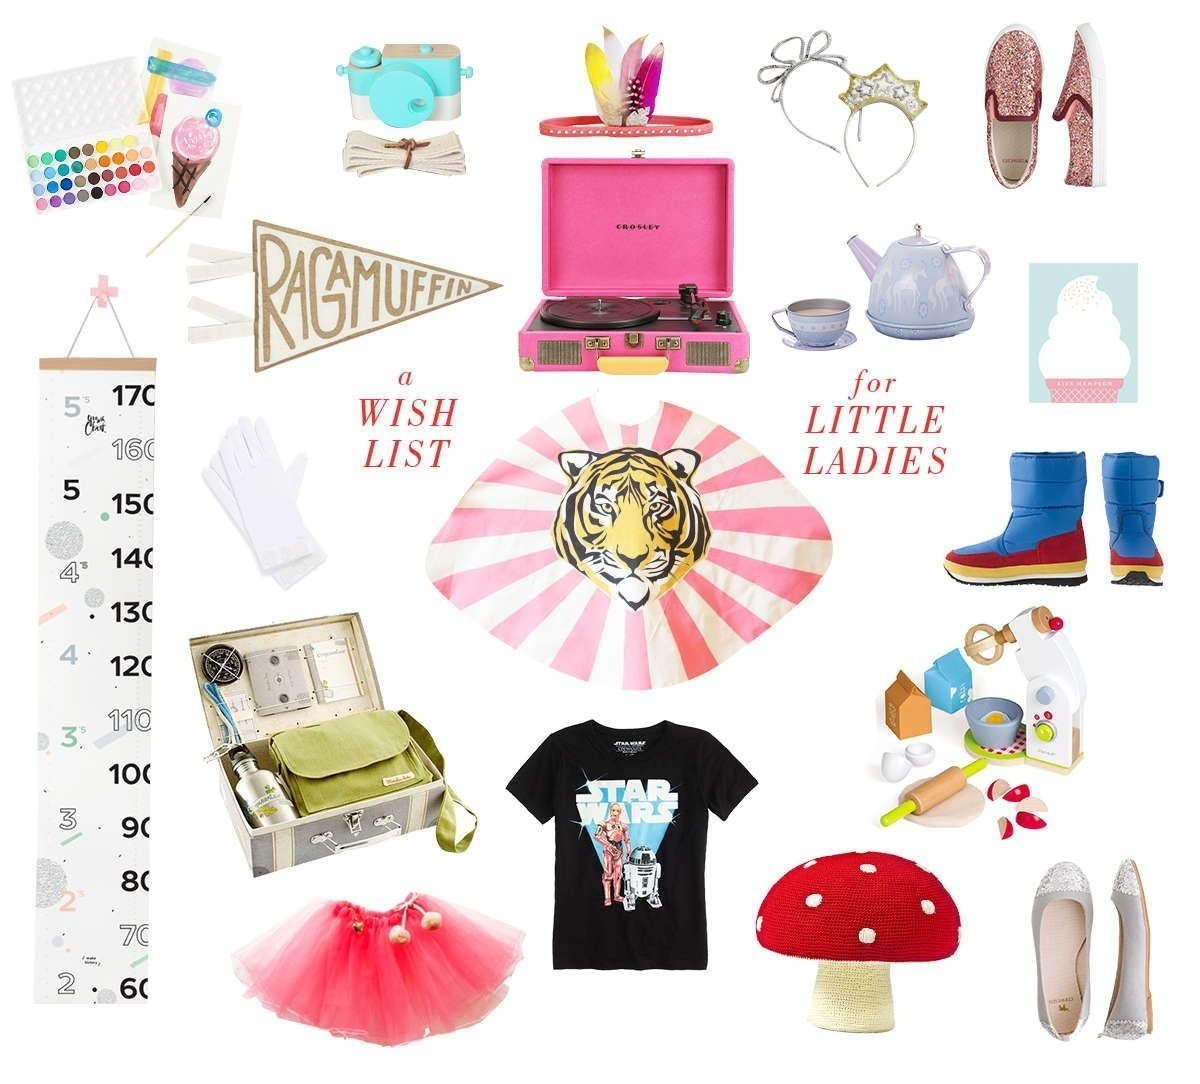 10 Stunning Gift Ideas For Little Girls a wish list for little ladies christmas gifts and gift 2021